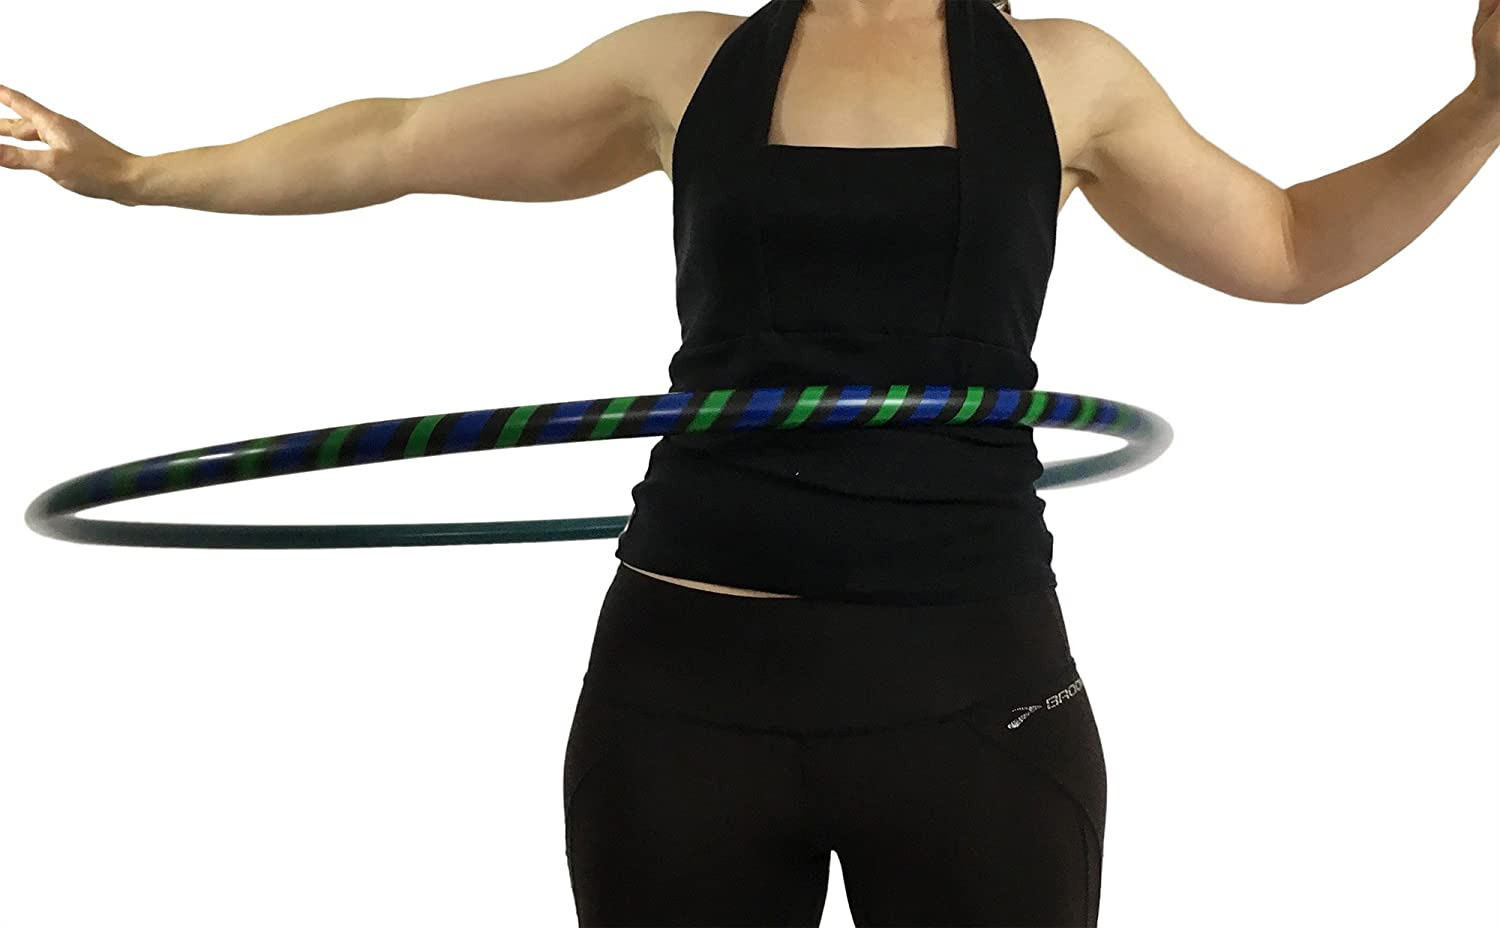 Amazon.com : Weighted Hula Hoop for Exercise and Fitness - MADE IN USA :  Exercise Equipment : Sports & Outdoors